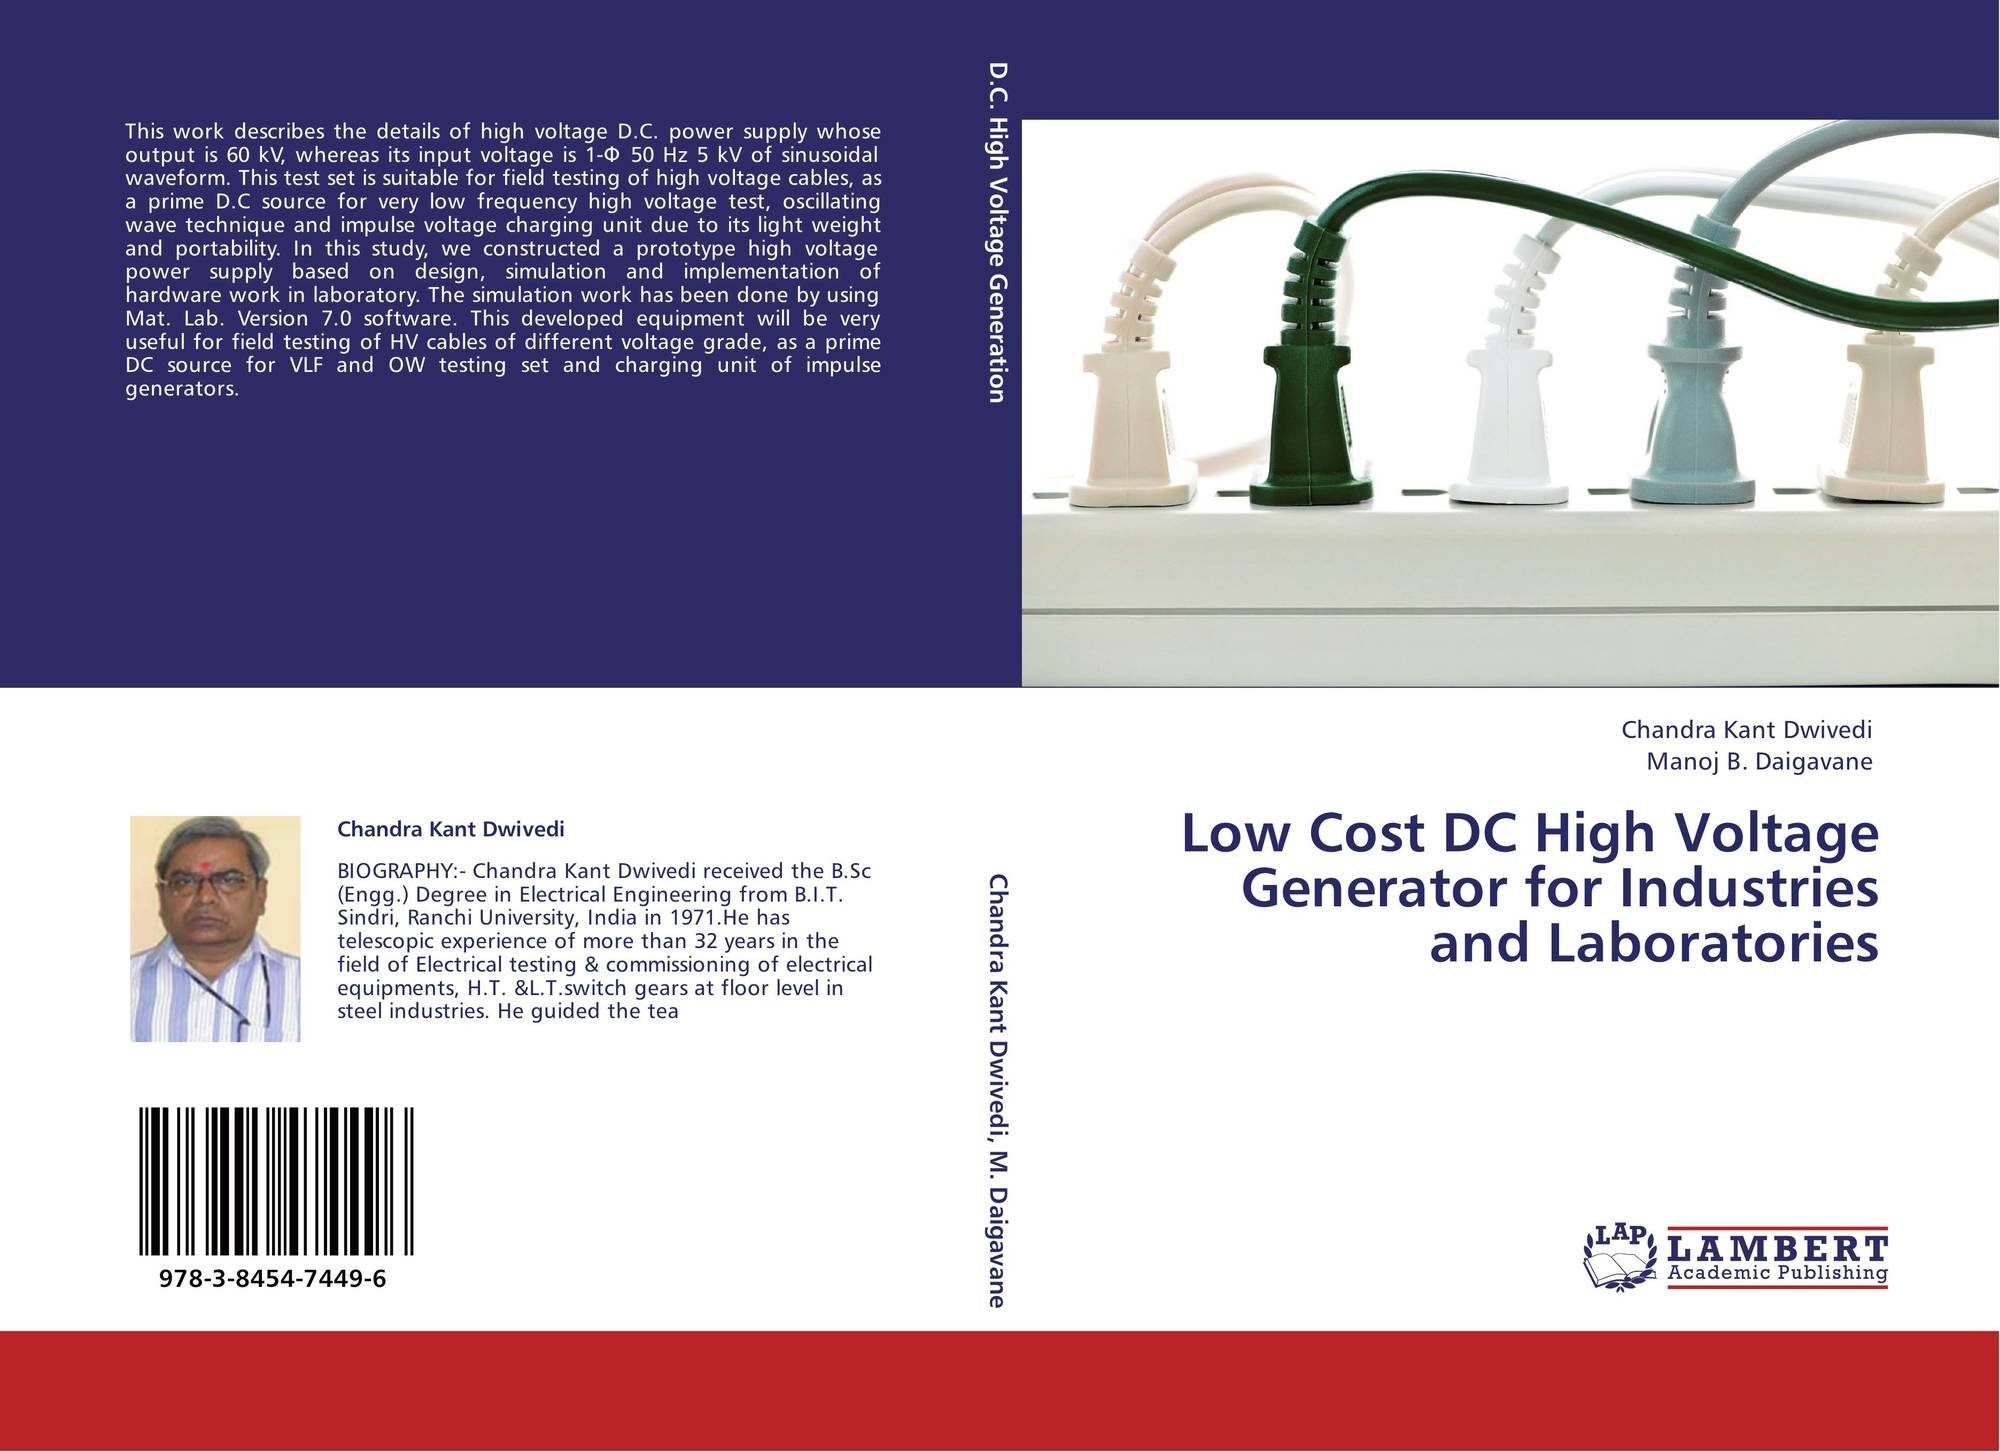 Low Cost DC High Voltage Generator for Industries and Laboratories